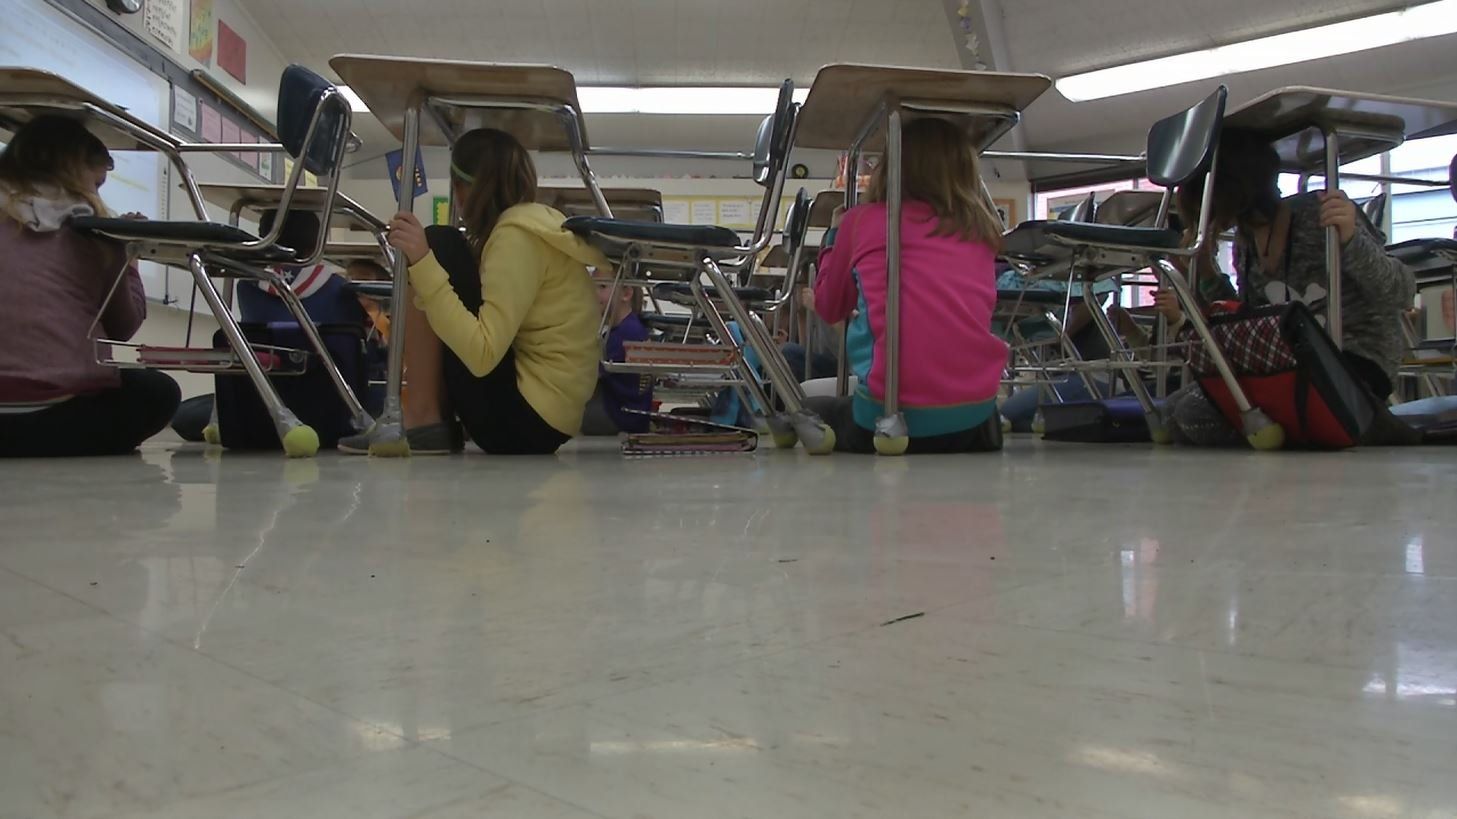 By hiding under their desks, students can protect themselves from ceiling debris in the event of an earthquake. (MTN News photo)